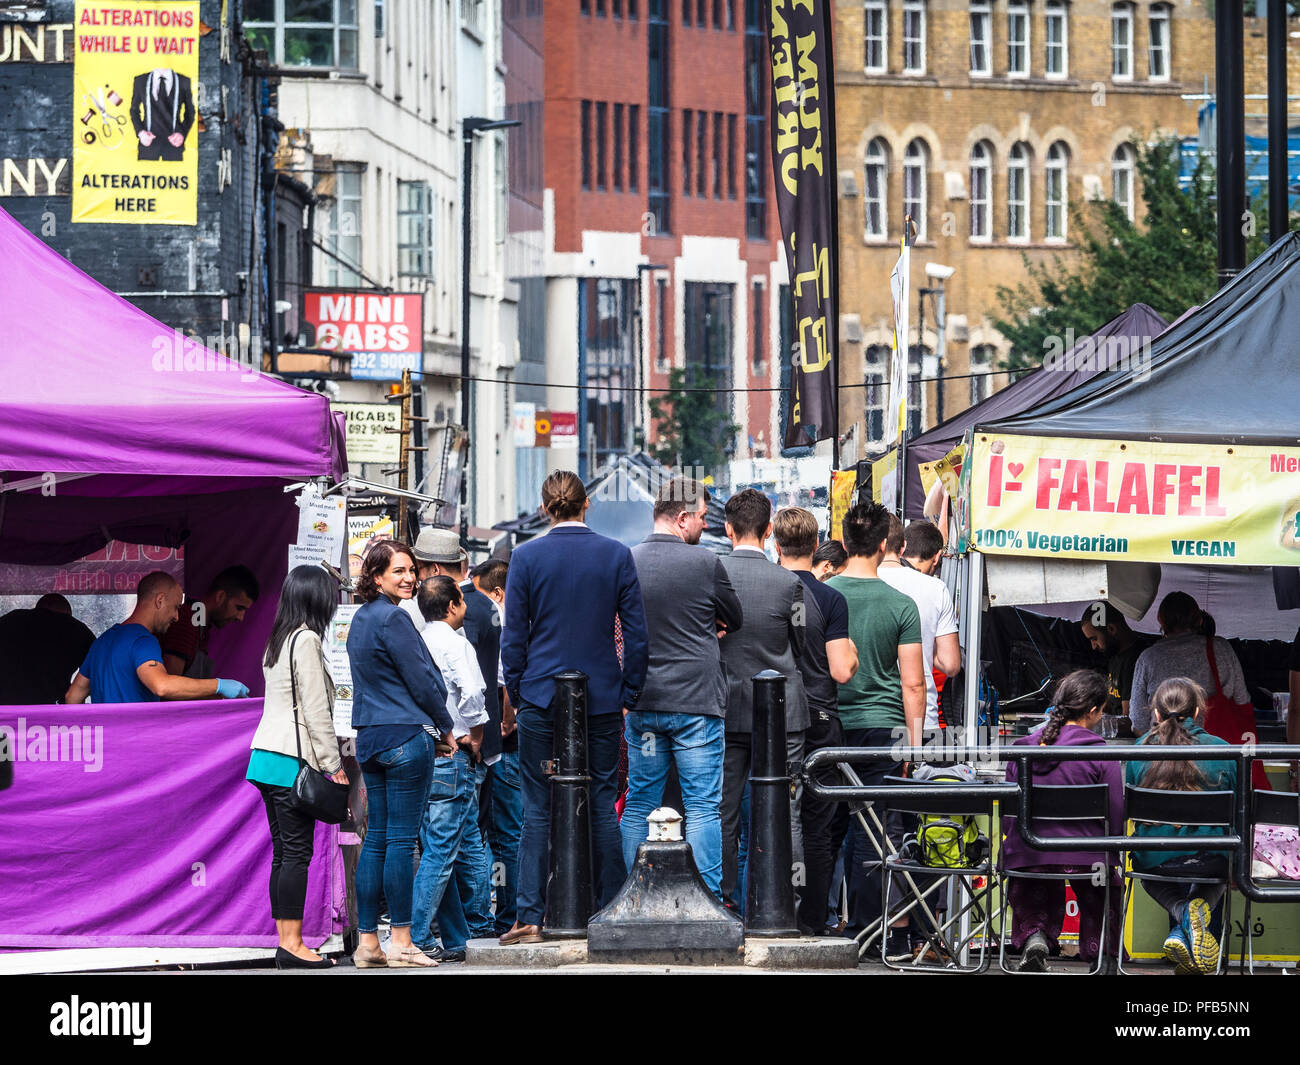 London Street Food Market Petticoat Lane - City workers buy lunch at the food stalls on Petticoat Lane Street Market in East London - Stock Image